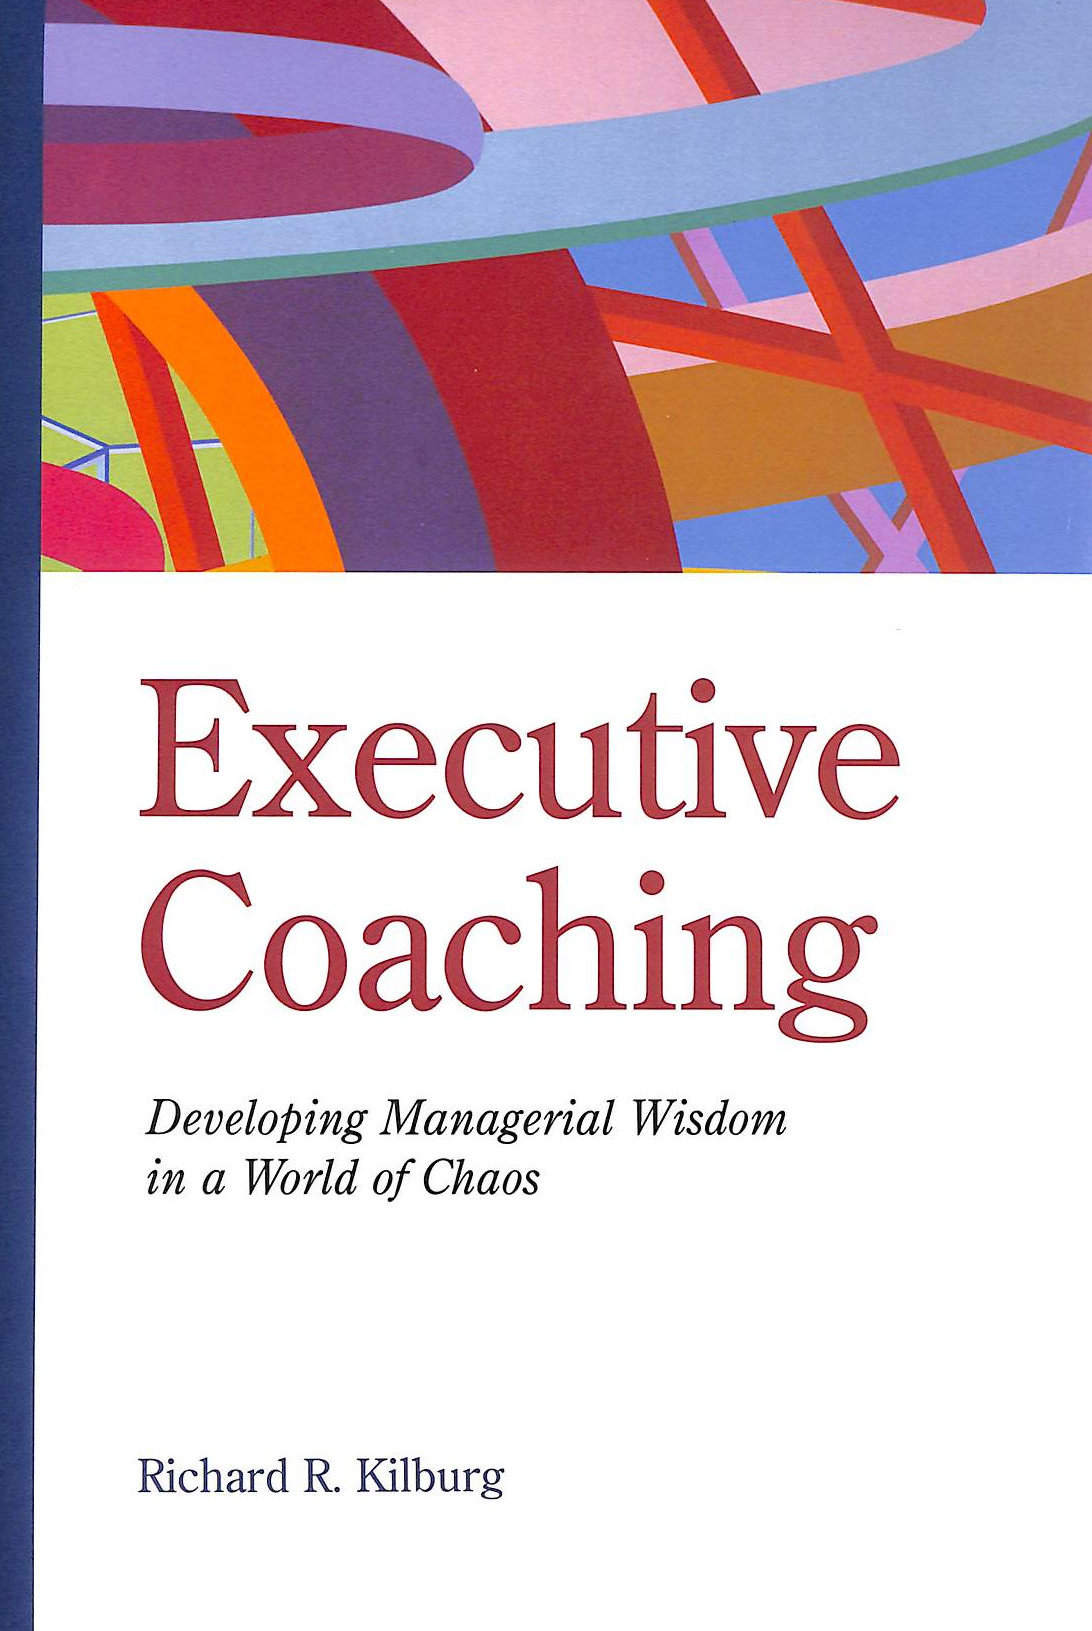 Image for Executive Coaching: Developing Managerial Wisdom In A World Of Chaos